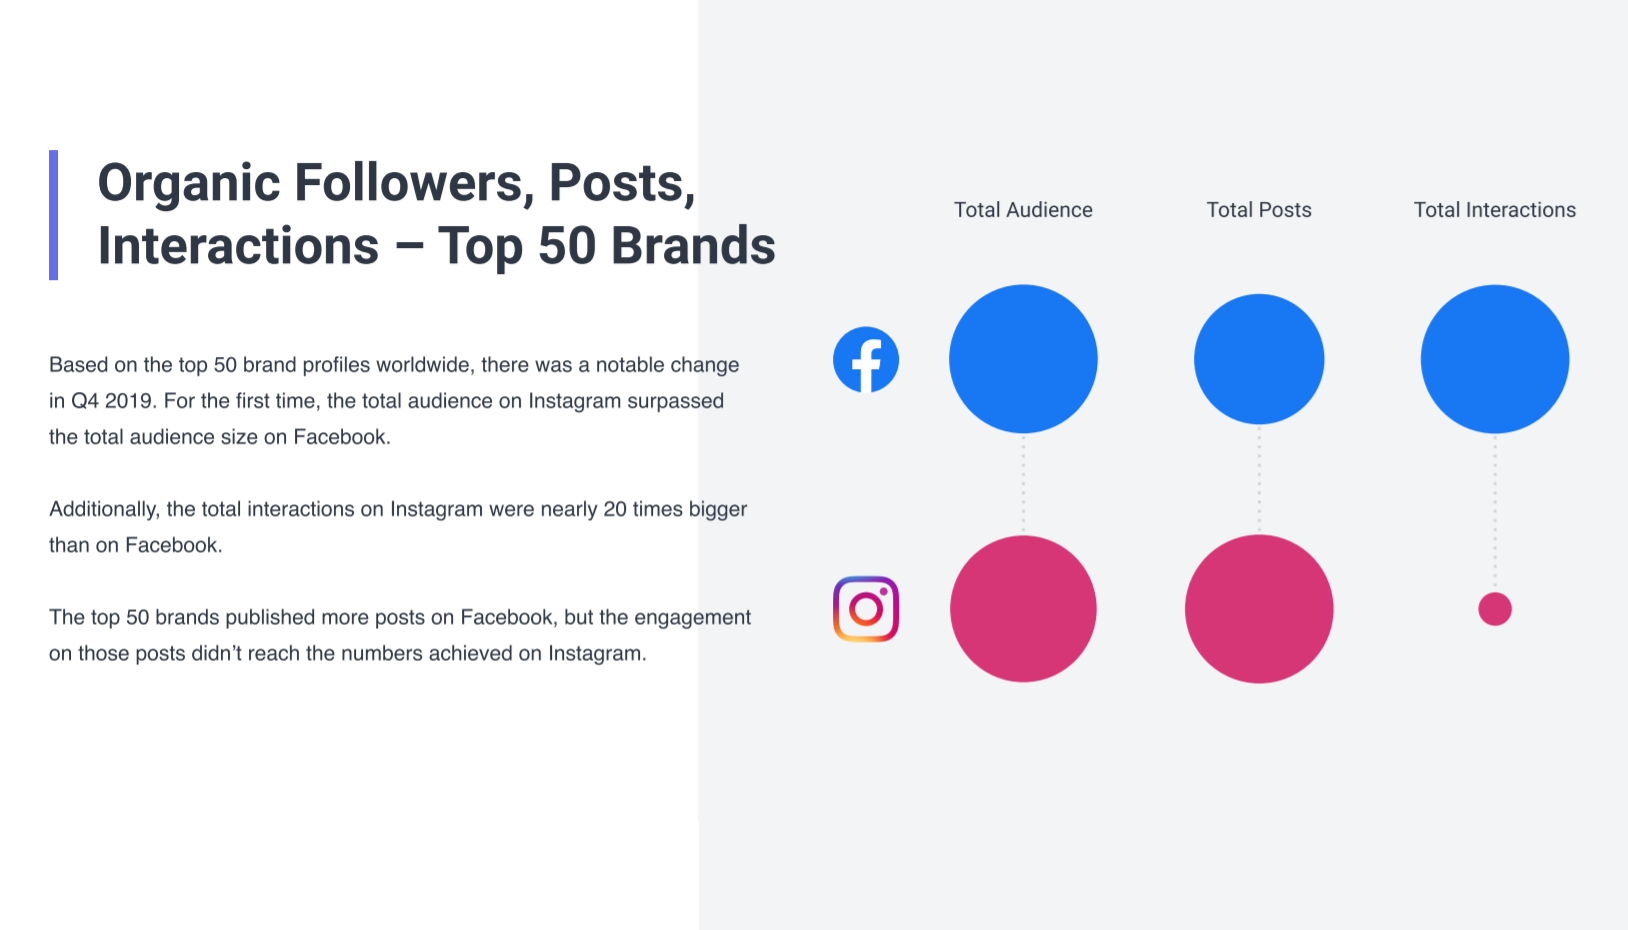 New Report Claims Instagram Now Attracts a Larger Audience Than Facebook Among Top Brands